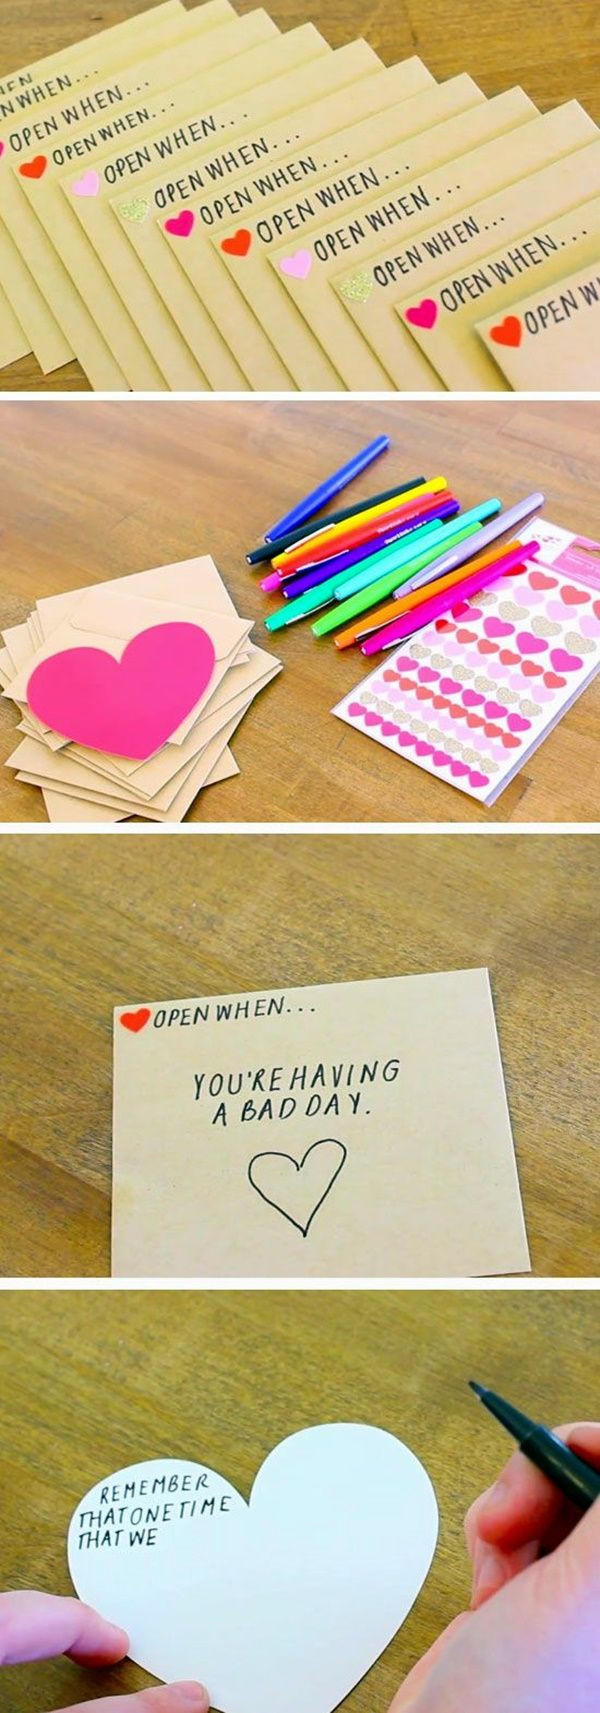 Homemade Boyfriend Gift Ideas  101 Homemade Valentines Day Ideas for Him that re really